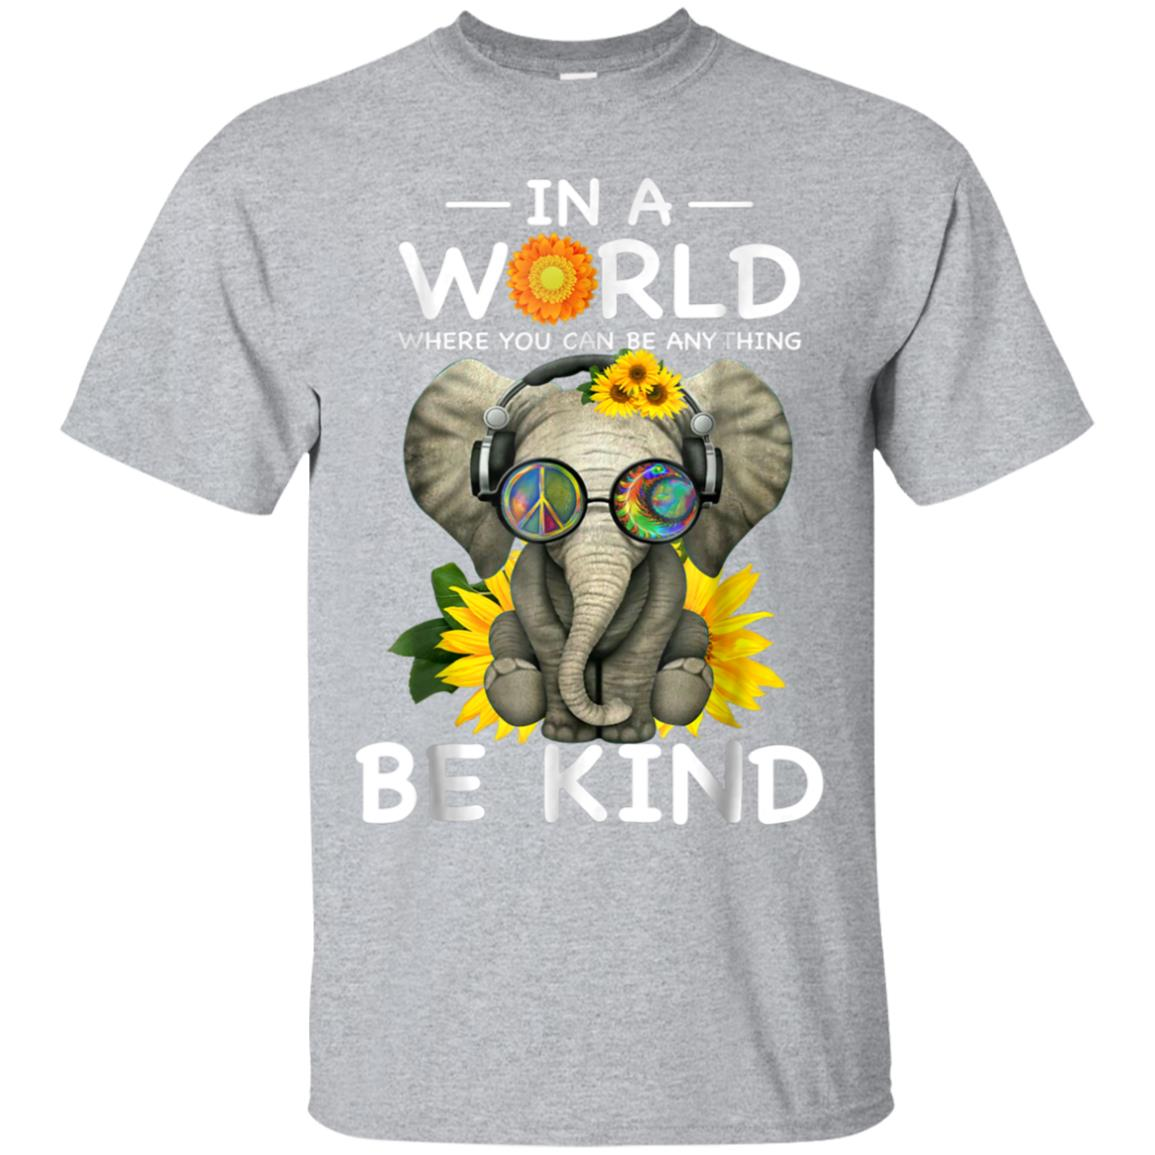 In a World where you can be anything BE KIND elephant Tshirt 99promocode